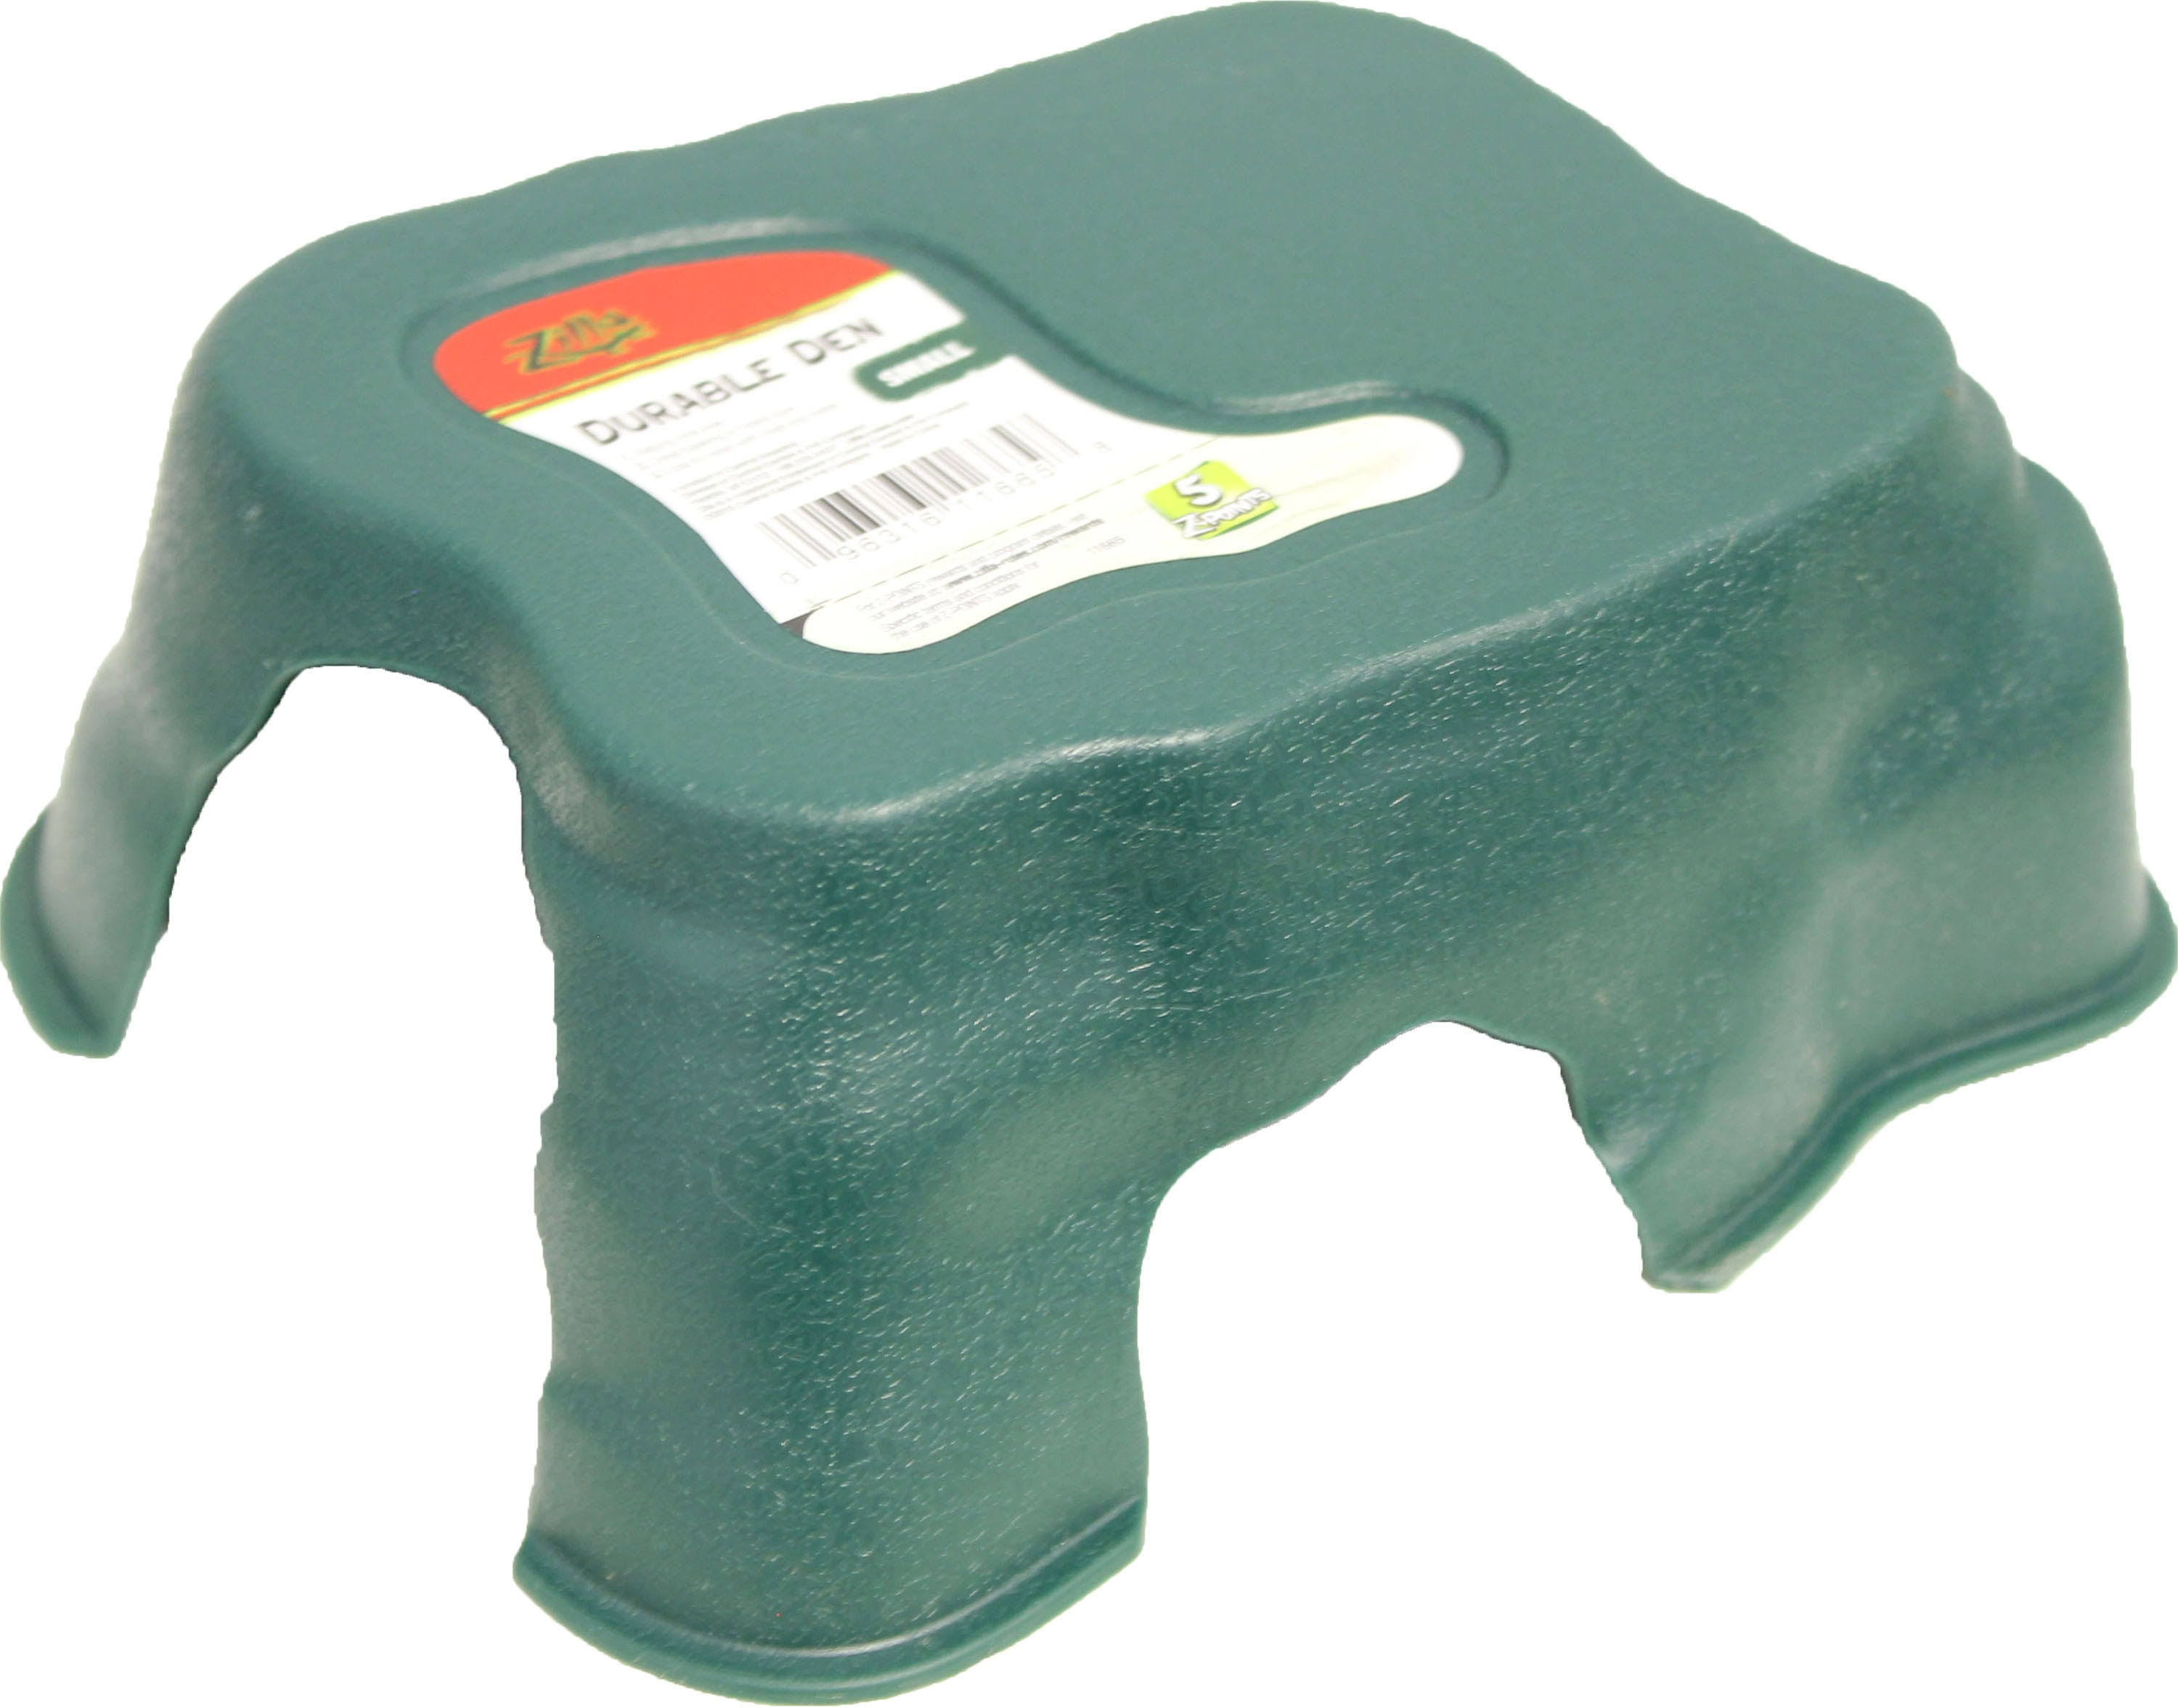 Zil Decor Durable Den - Green, Large